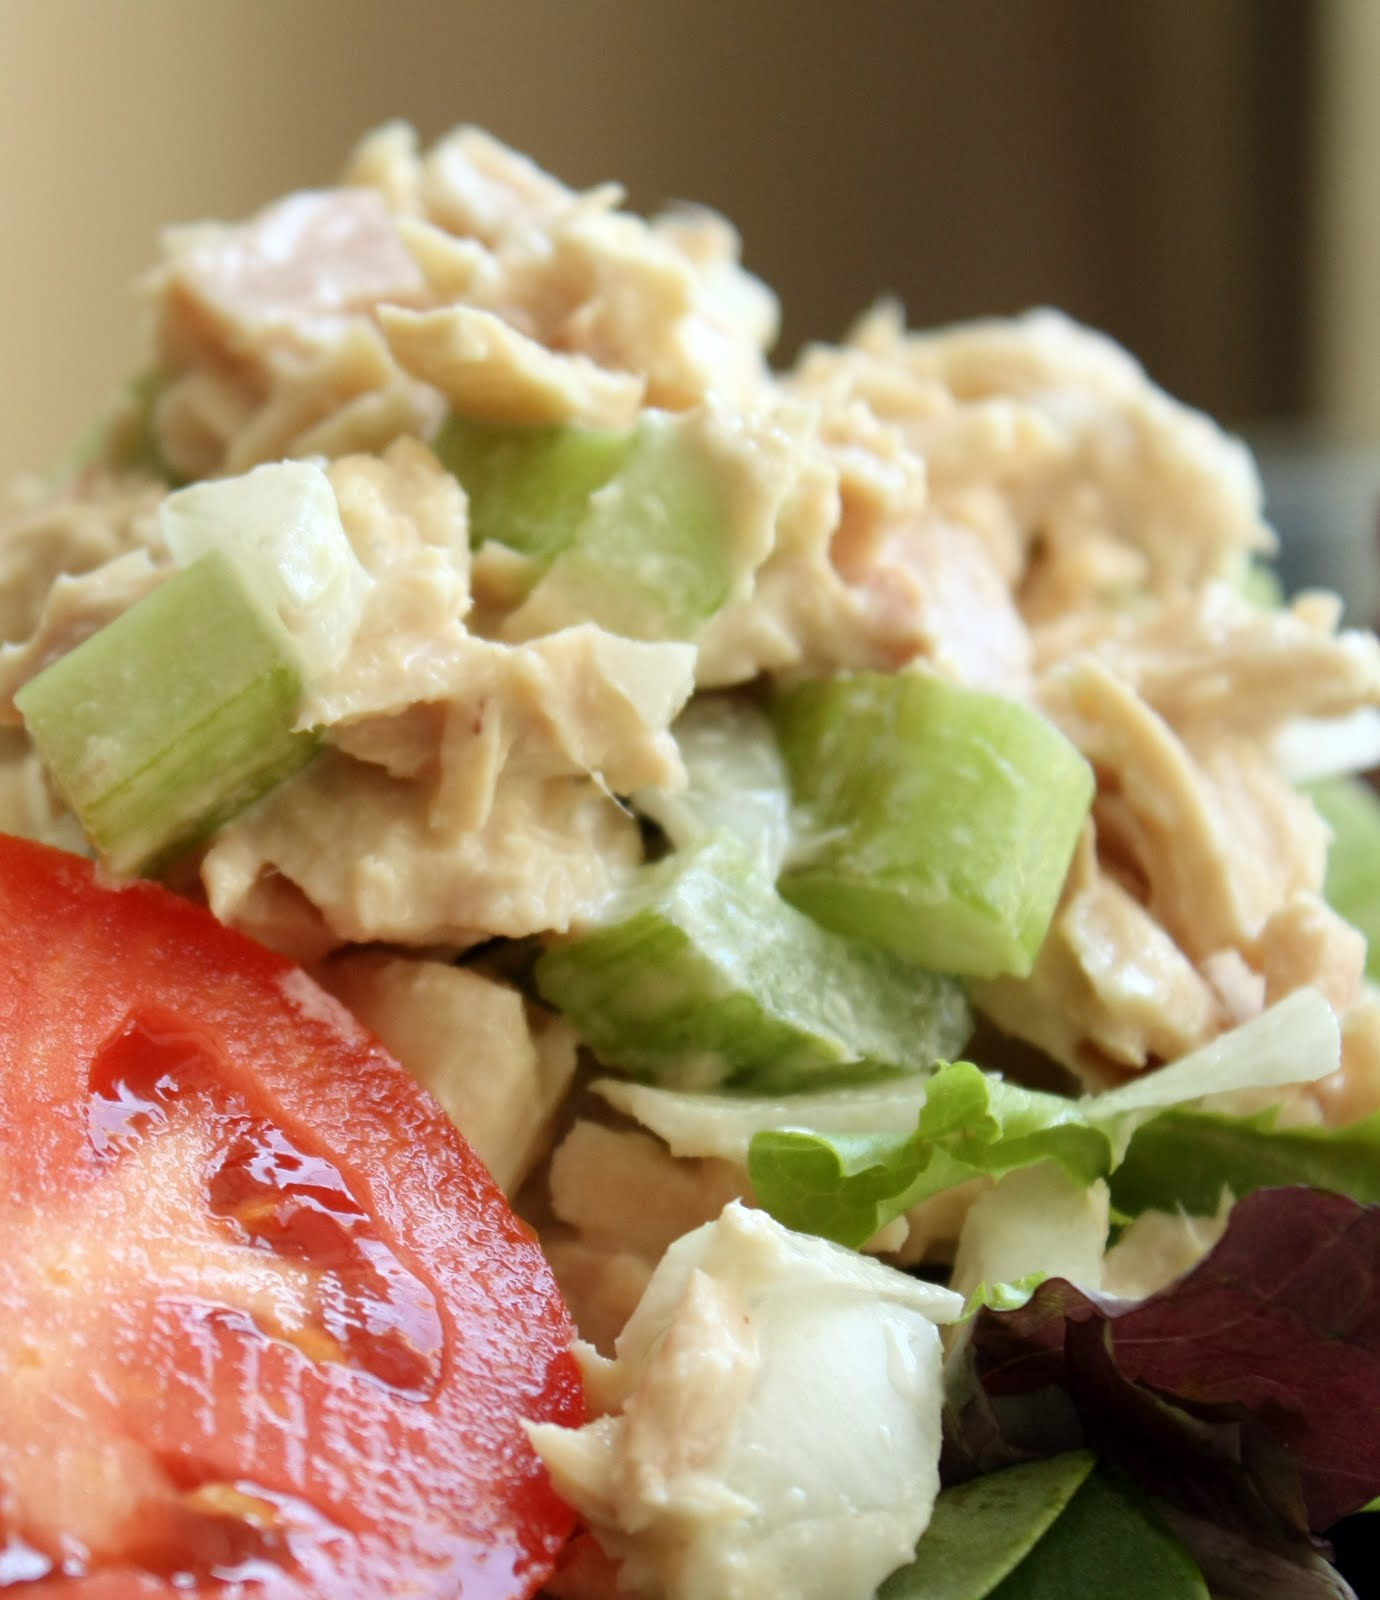 Tuna salad primal palate paleo recipes for Tuna fish salad recipe with egg